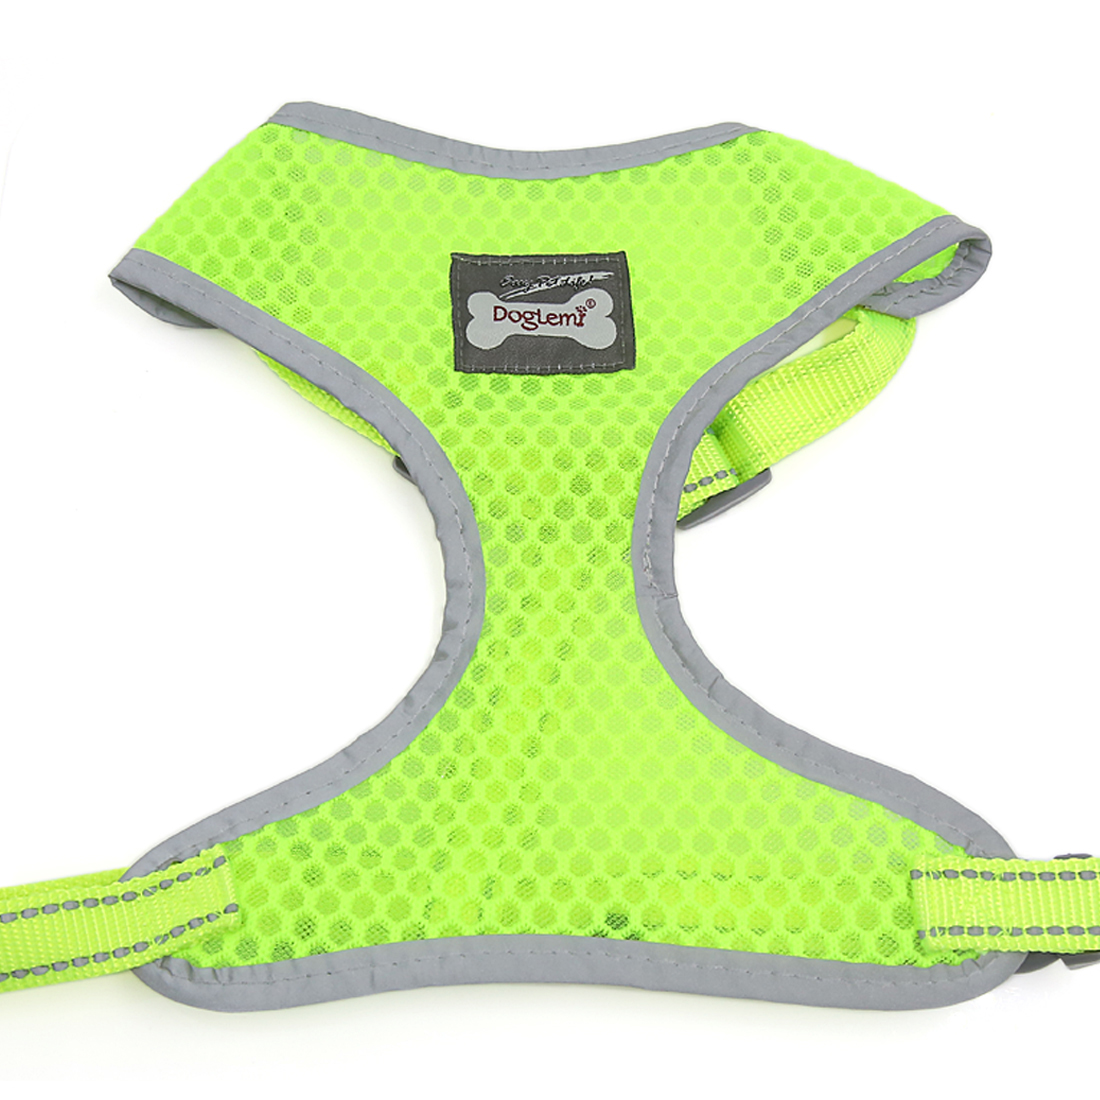 Comfort Control Dog Harness Adjustable Breathable Soft Air Mesh Puppy Harnesses Walk Collar Reflective Vest Yellow XL